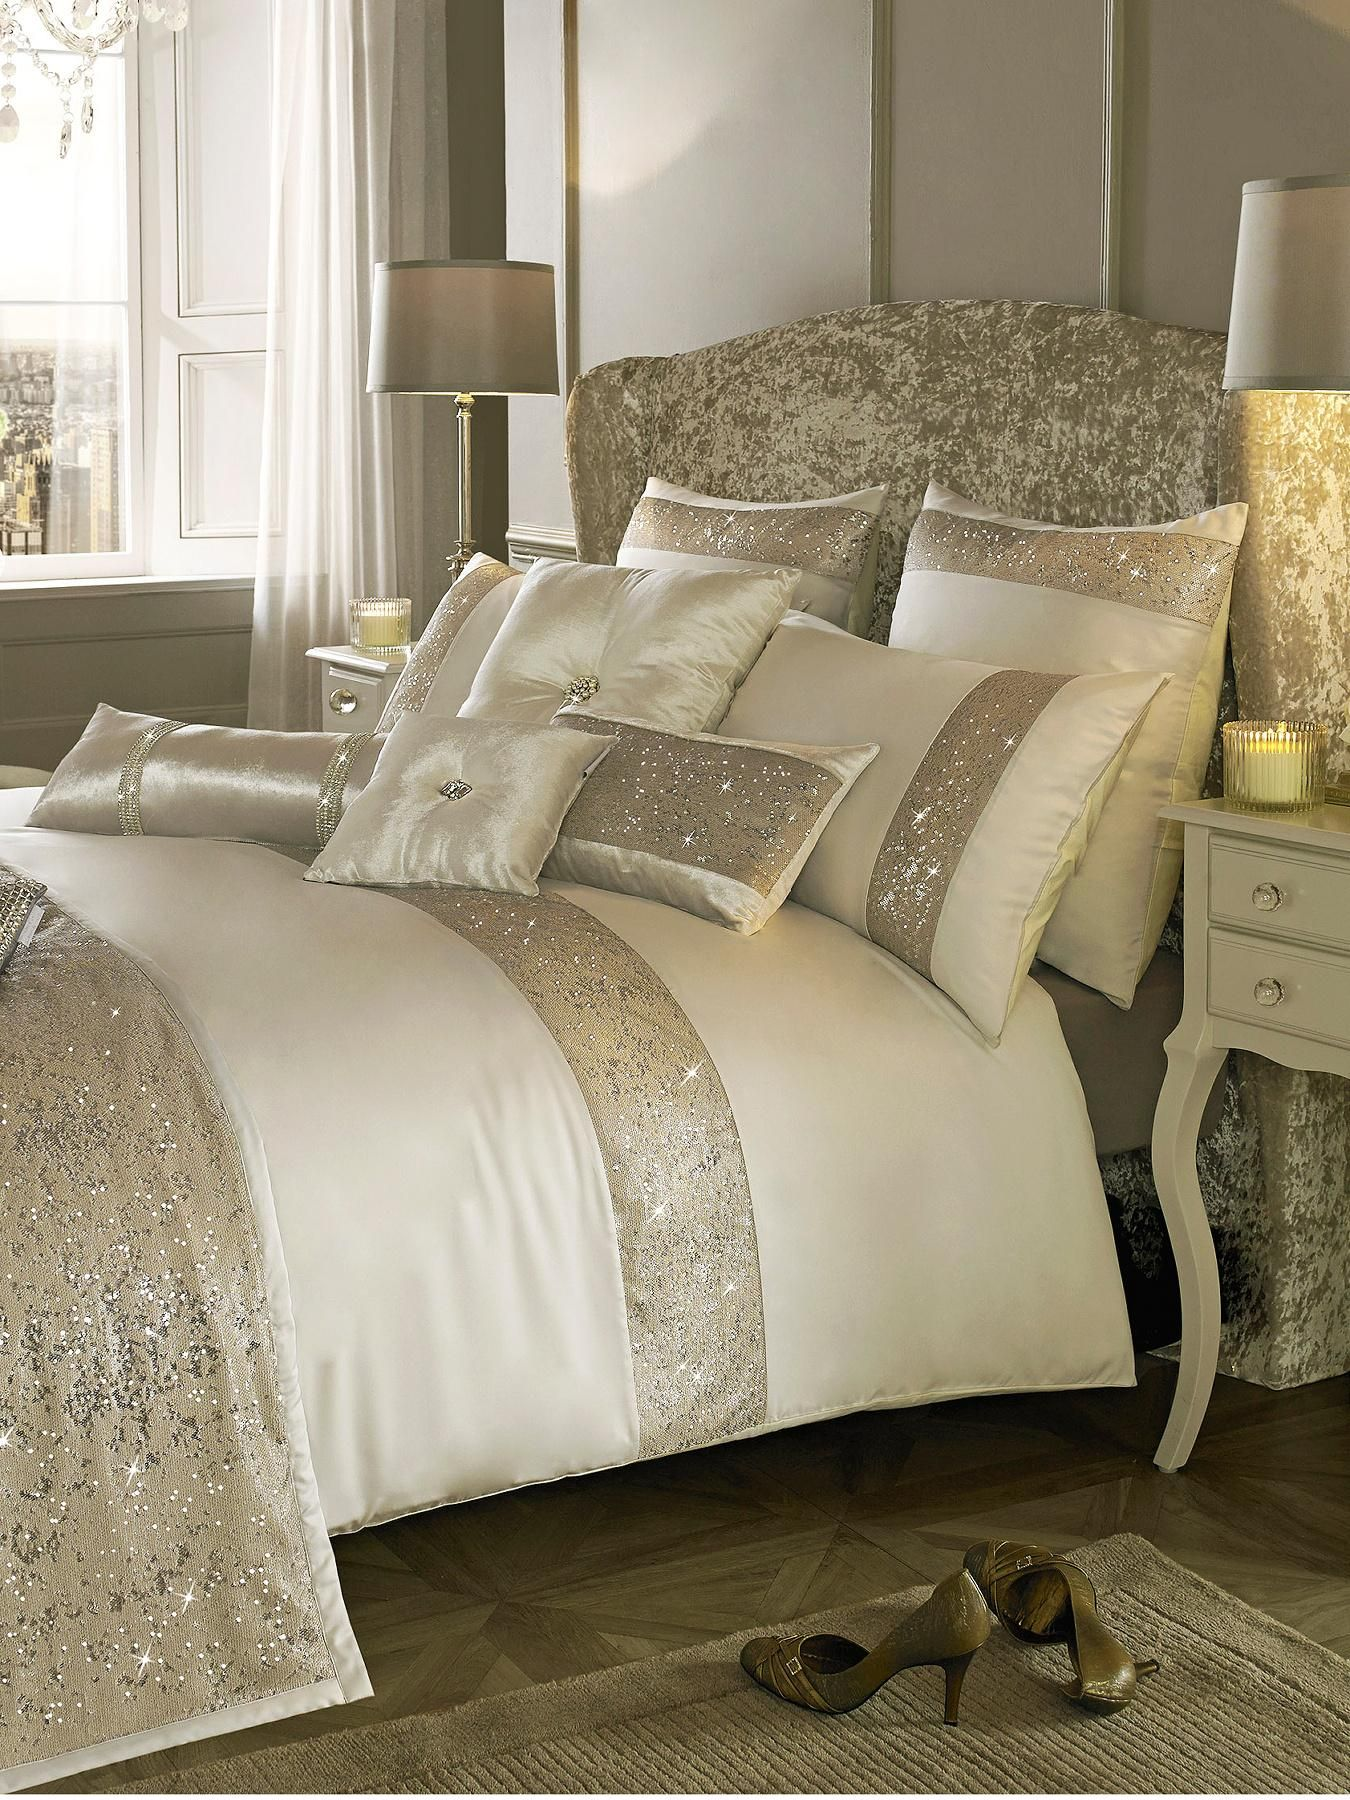 Kylie Minogue Duo Bedding Range | very.co.uk | My house | Pinterest ...